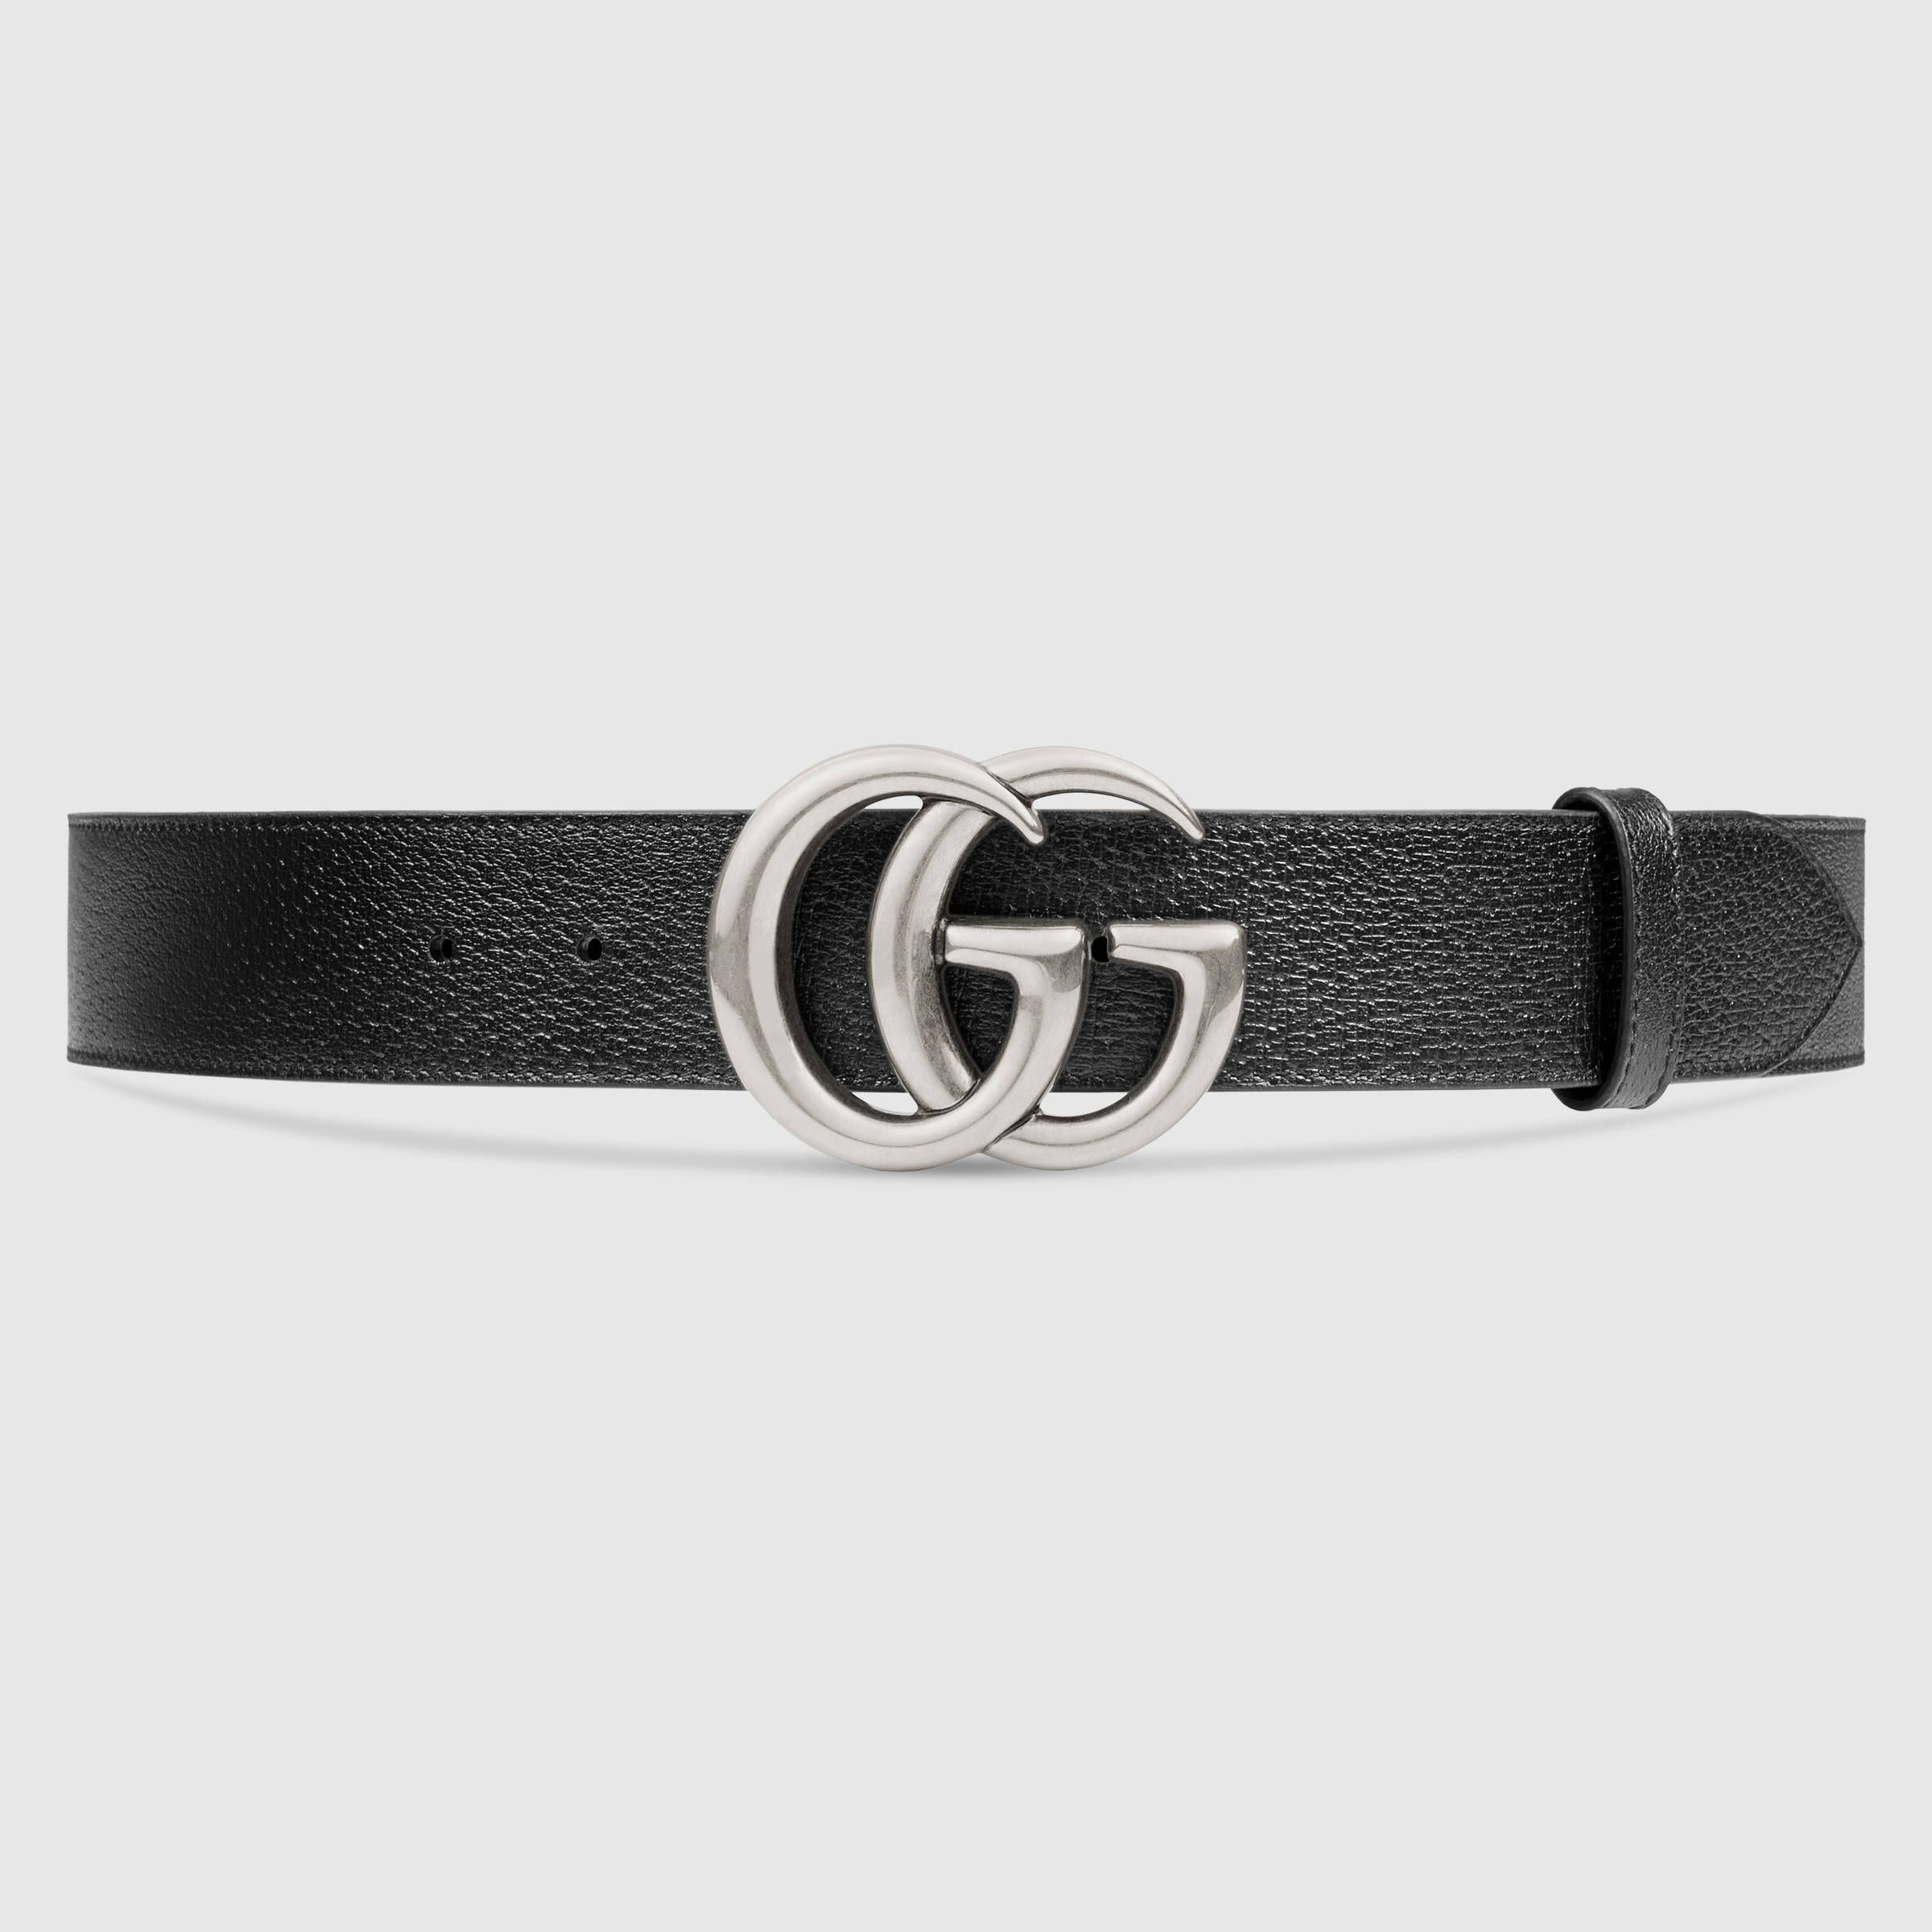 9b7767886ce  450 Leather belt with double G buckle in silver